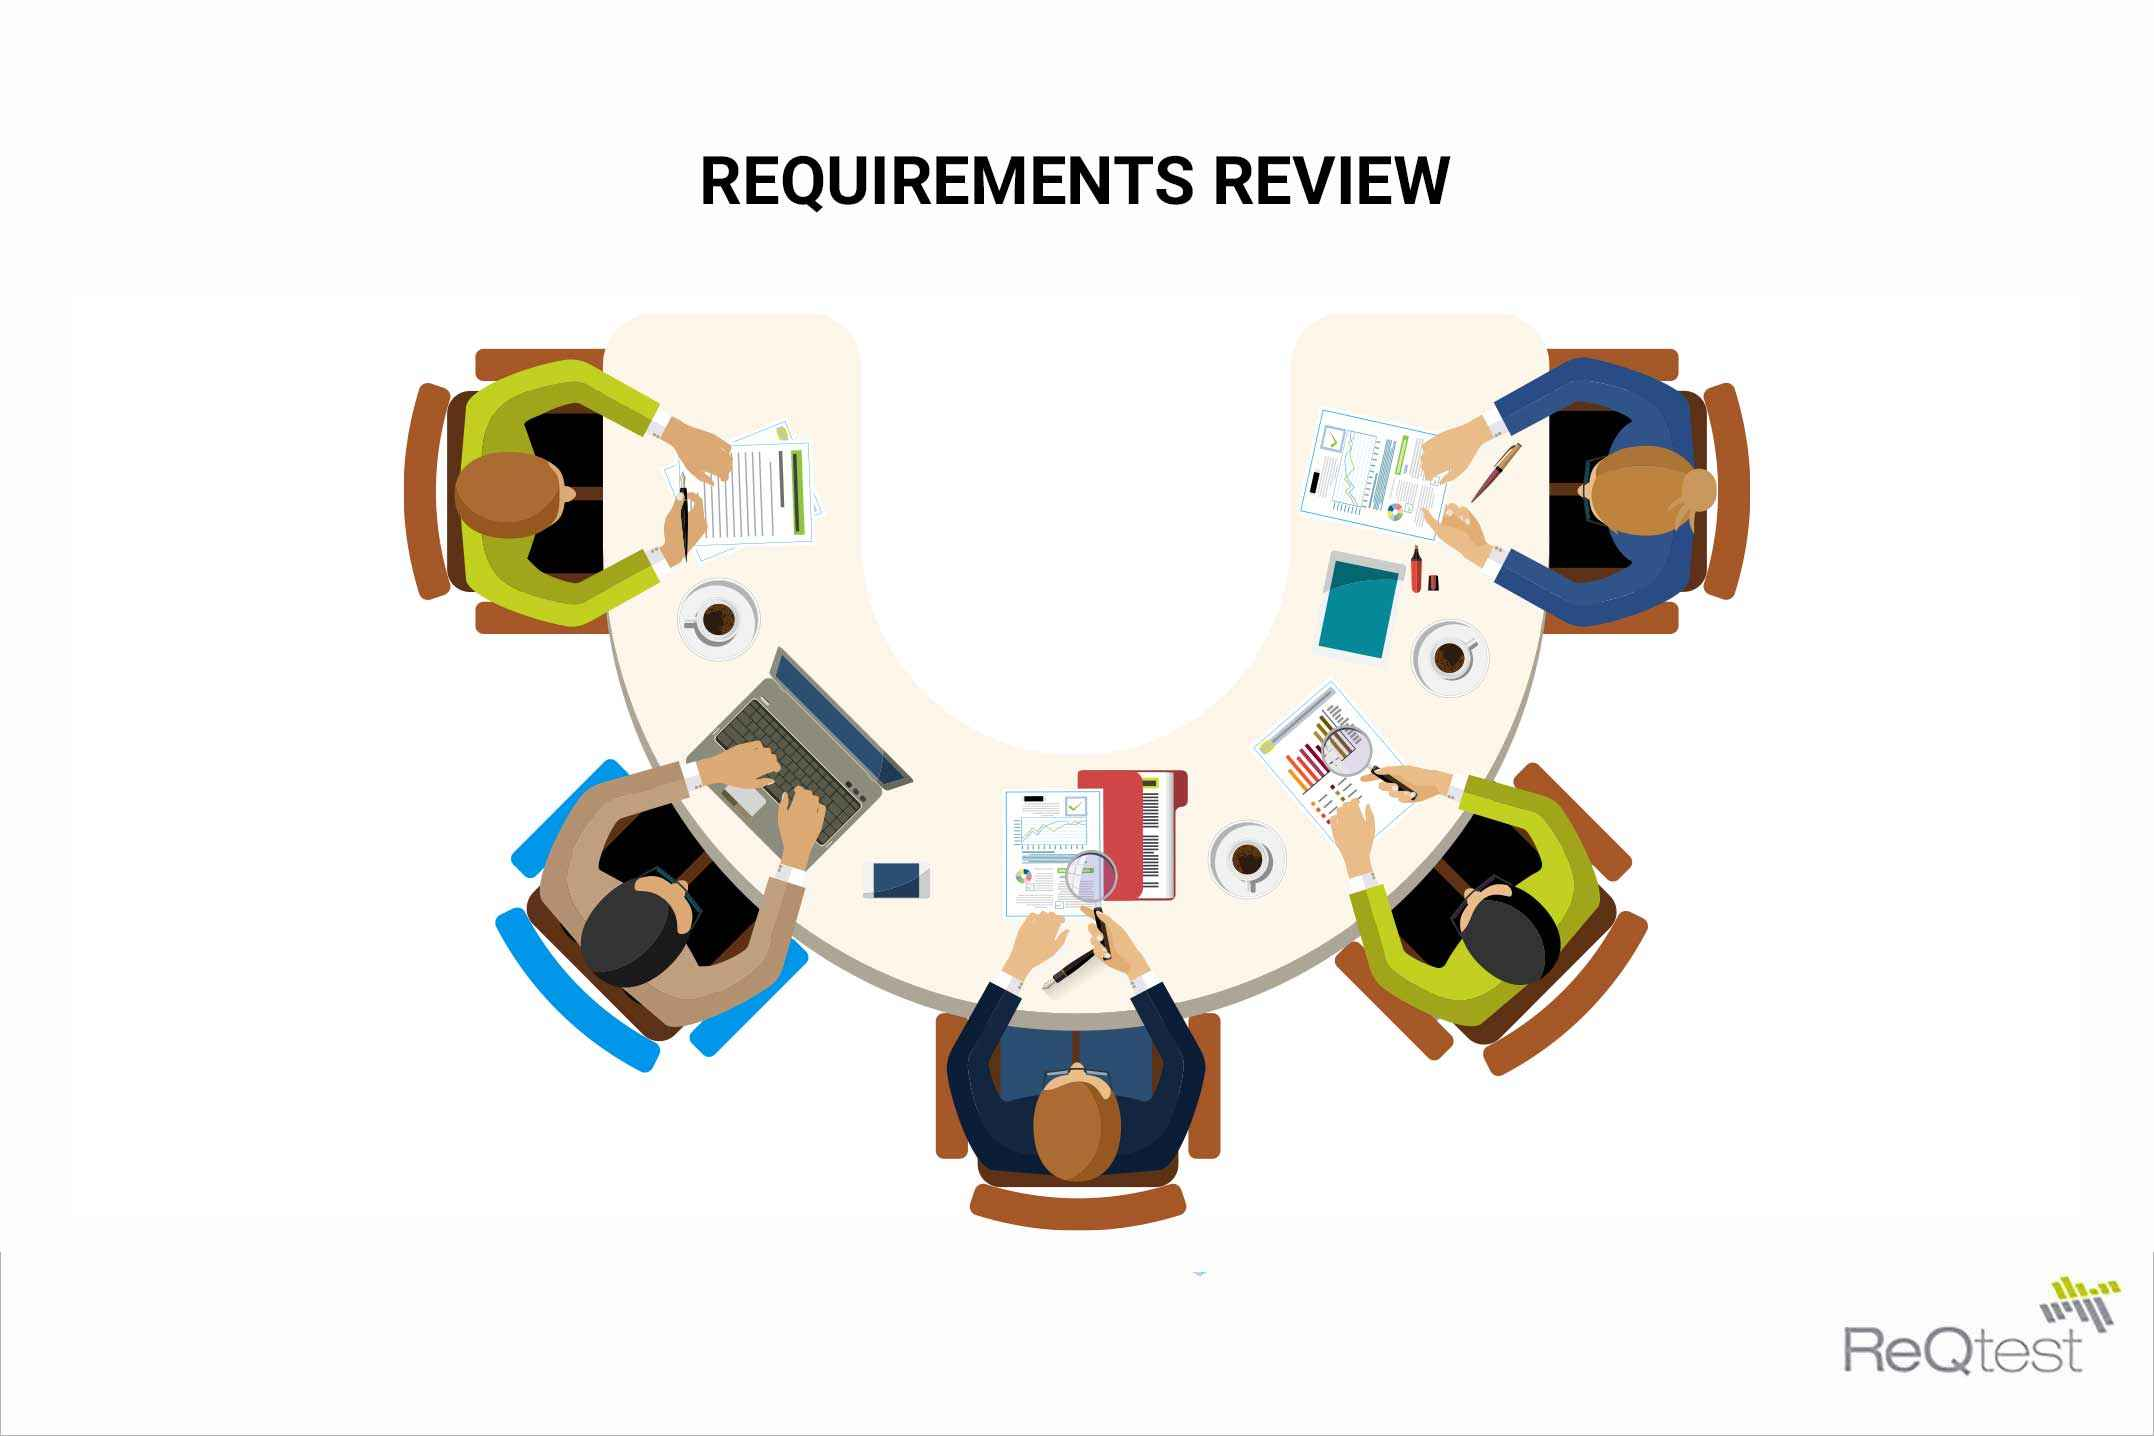 Requirment review